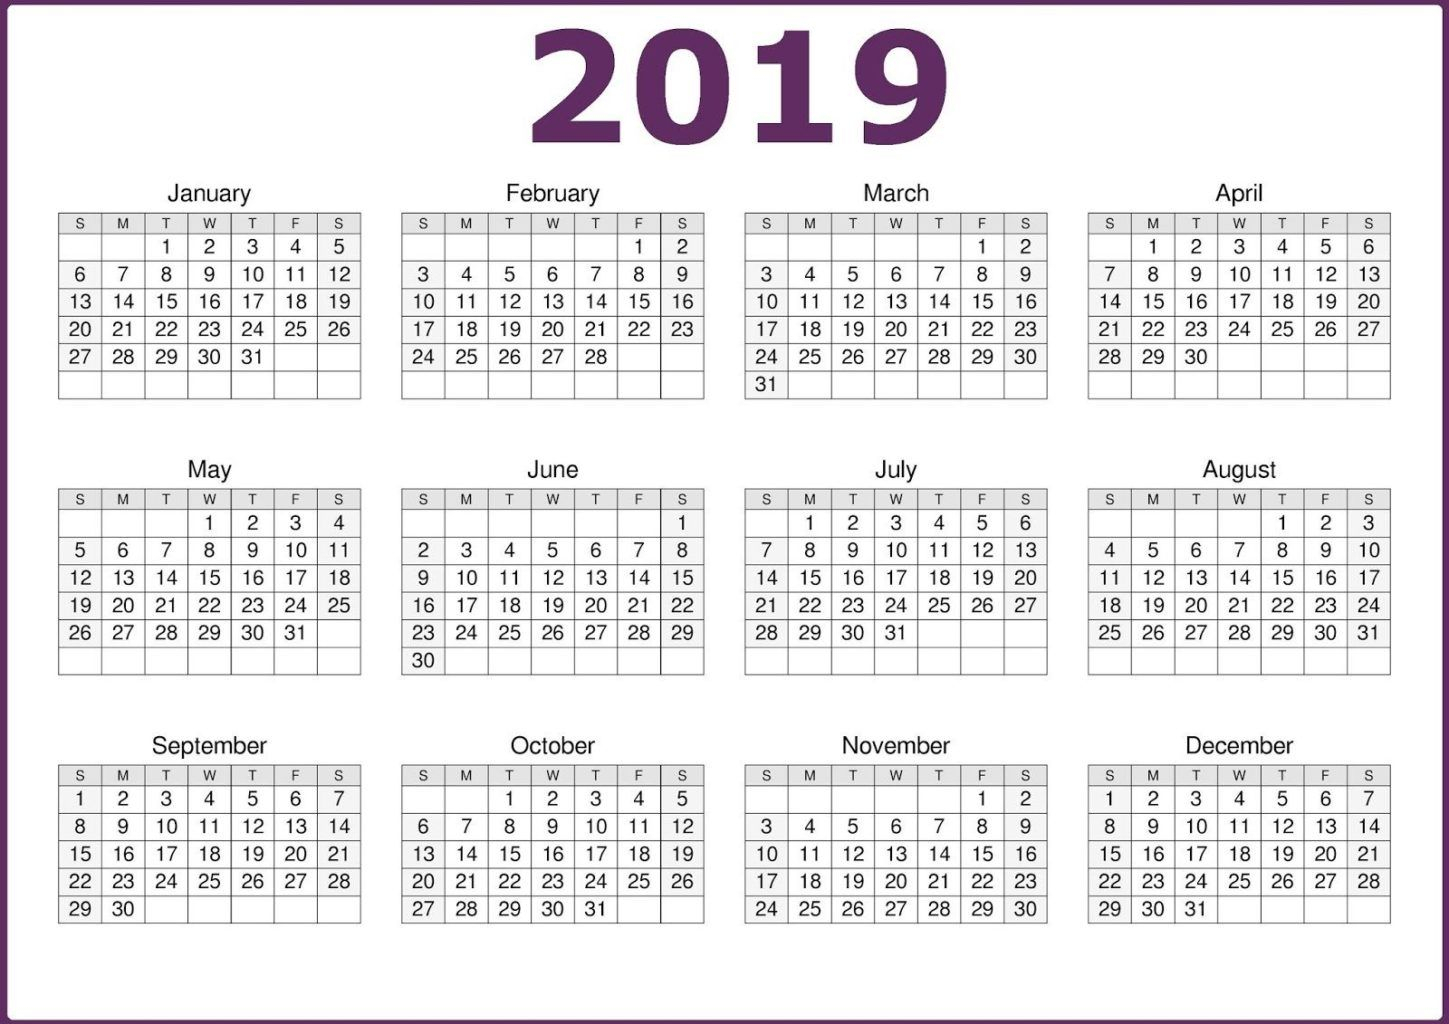 2019 One Page Calendar Printable | Calendar 2019 Template